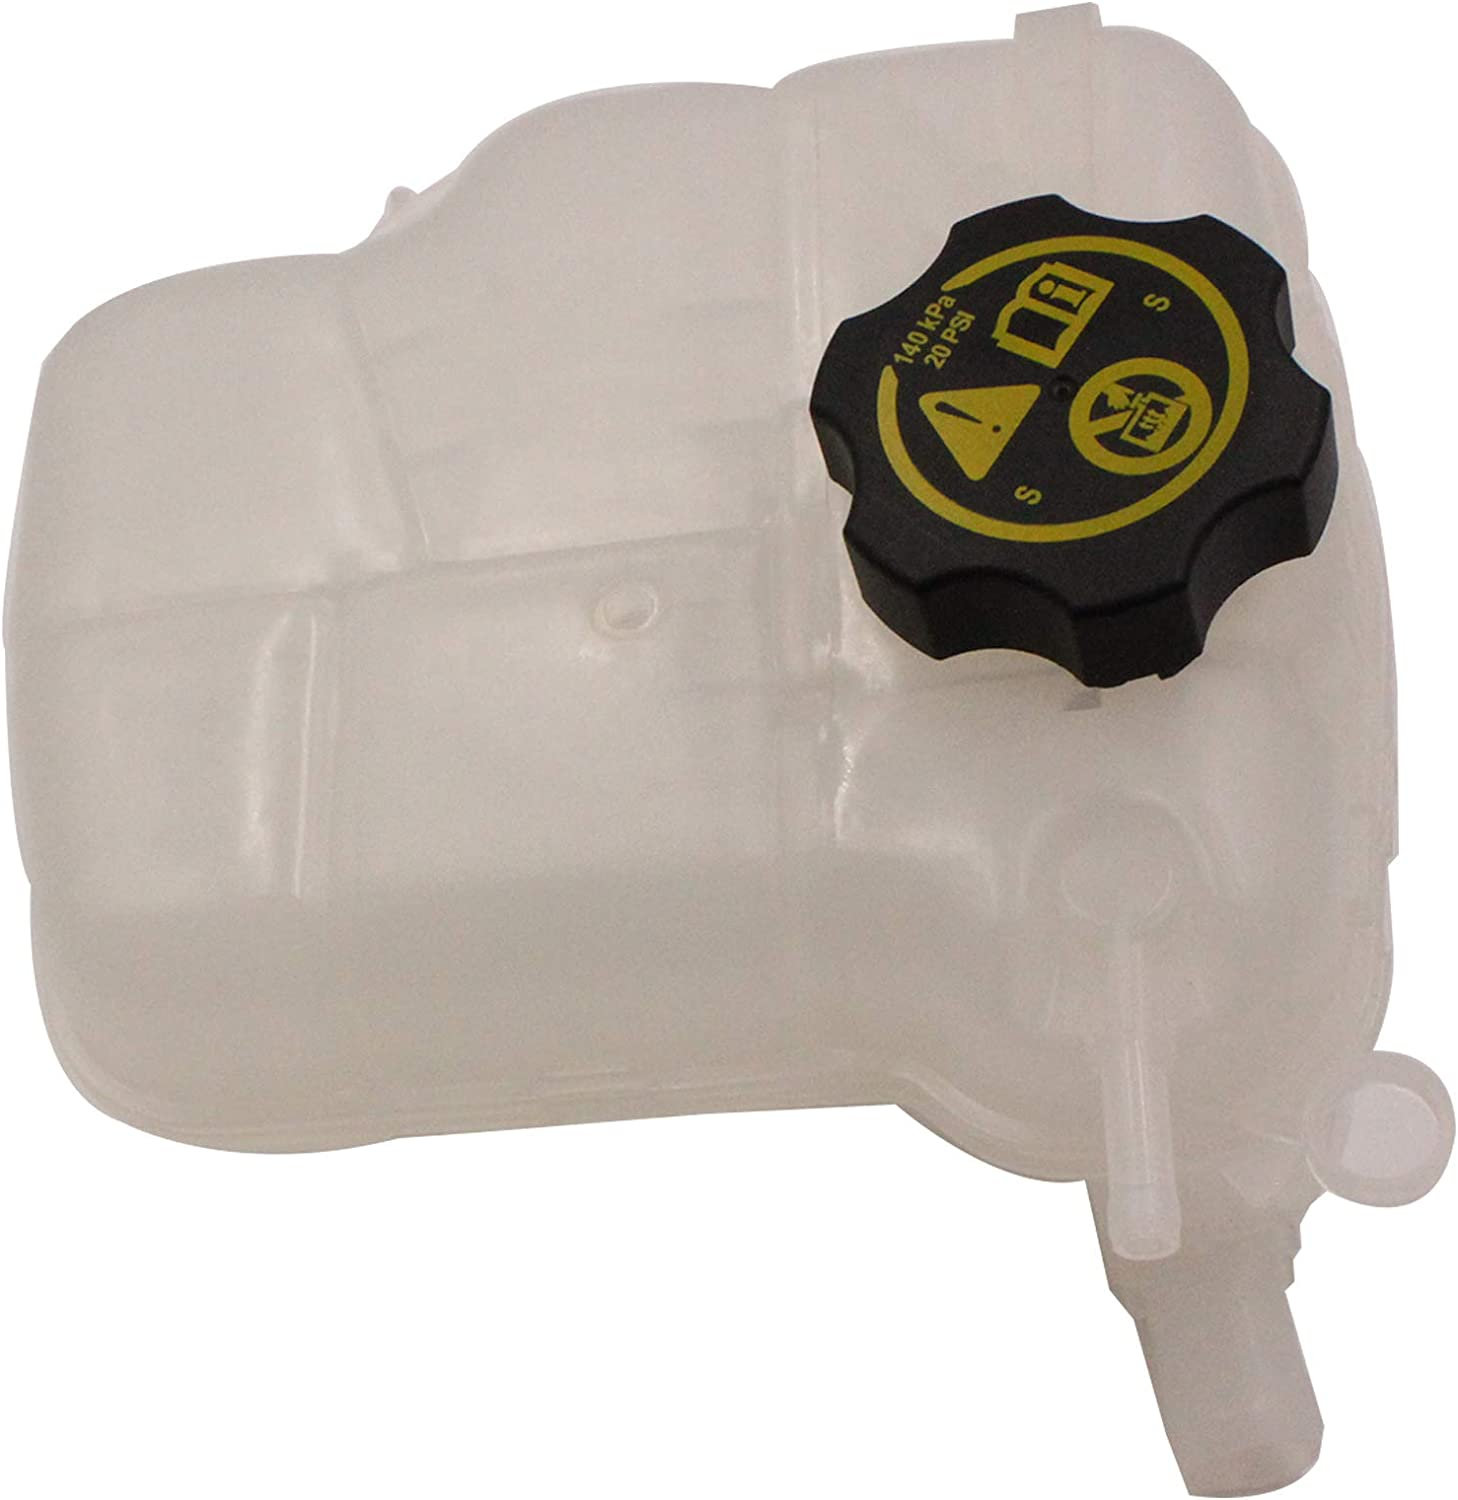 LOSTAR Engine Coolant Reservoir Tank Fits 2011-2016 GM Verano Cruze Sonic 13393368